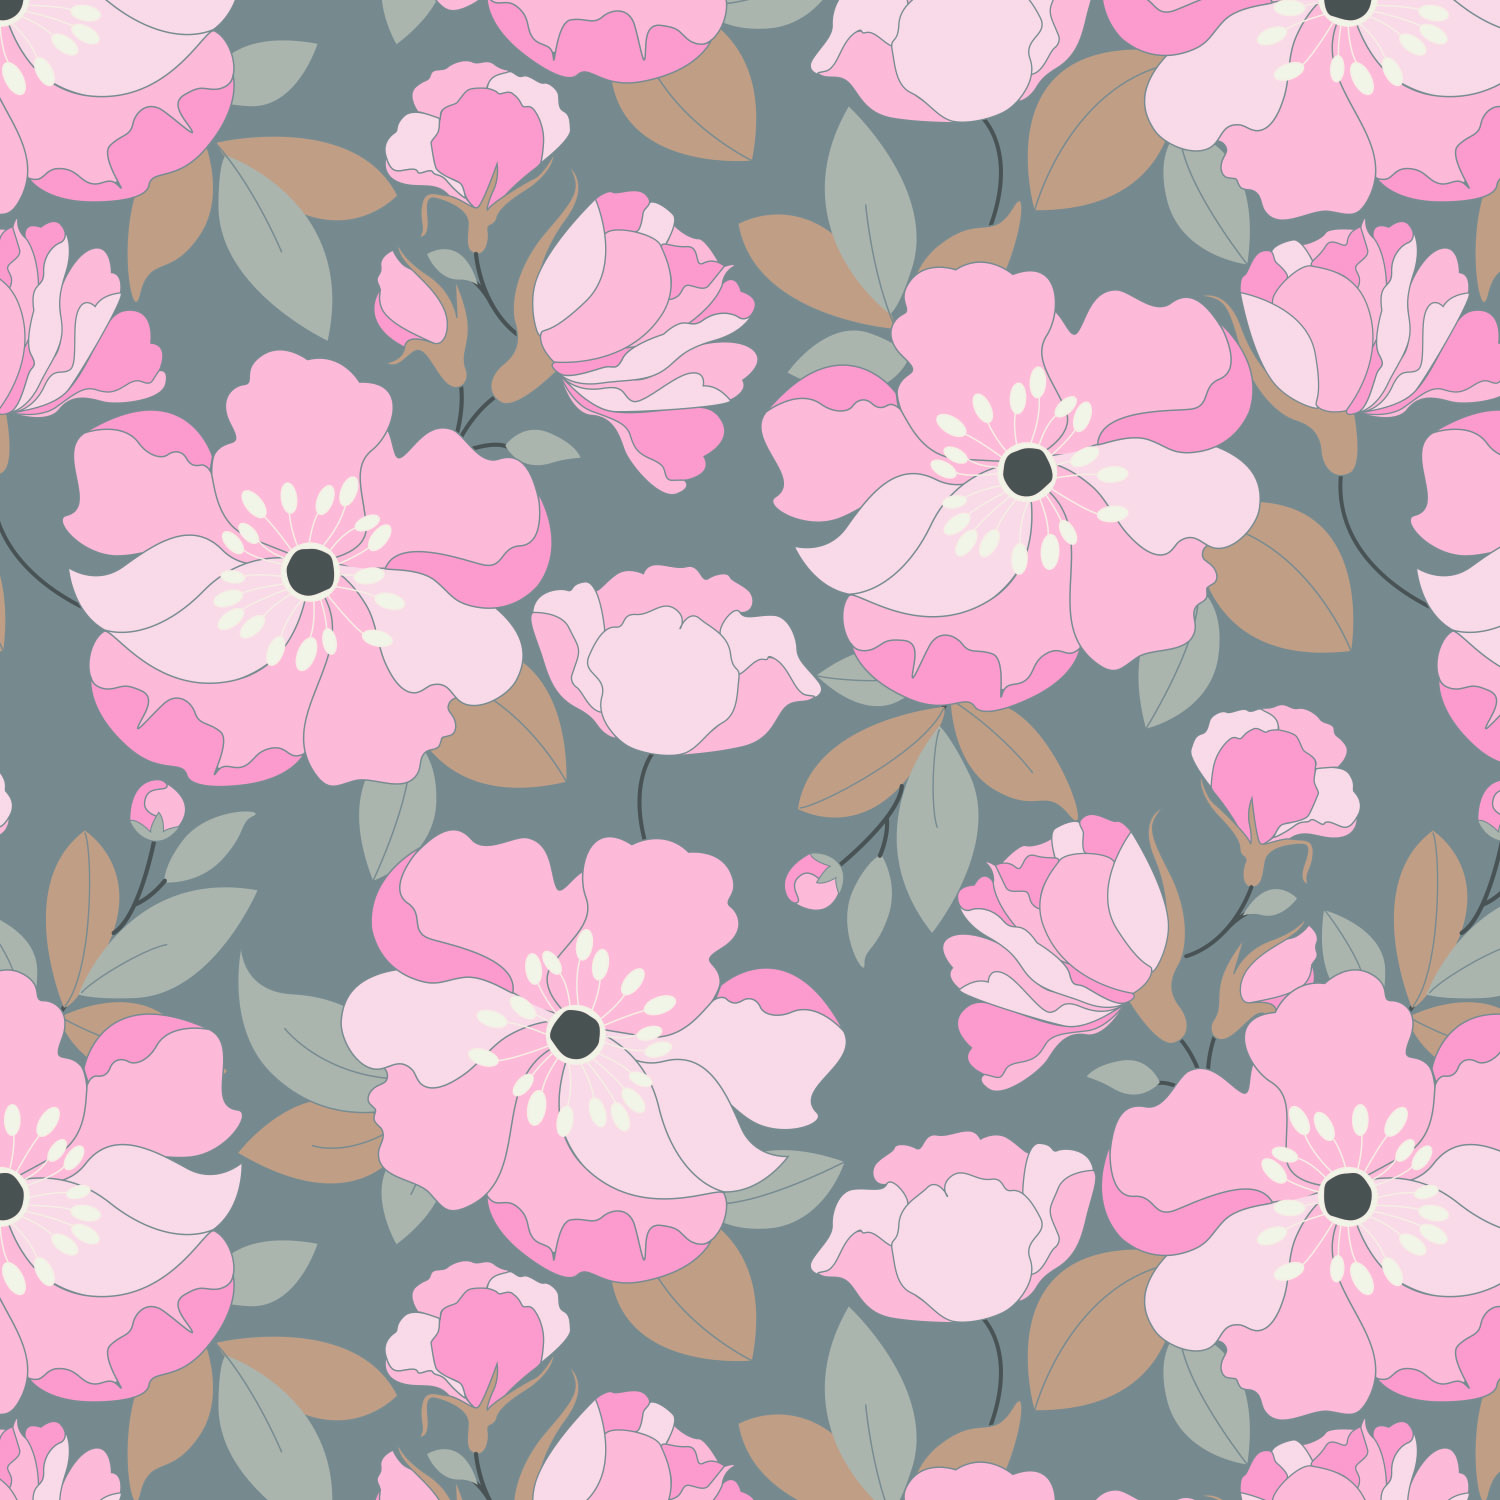 Emma & Mila Cotton Petals Grey With Love Collection Fabric, per Yard